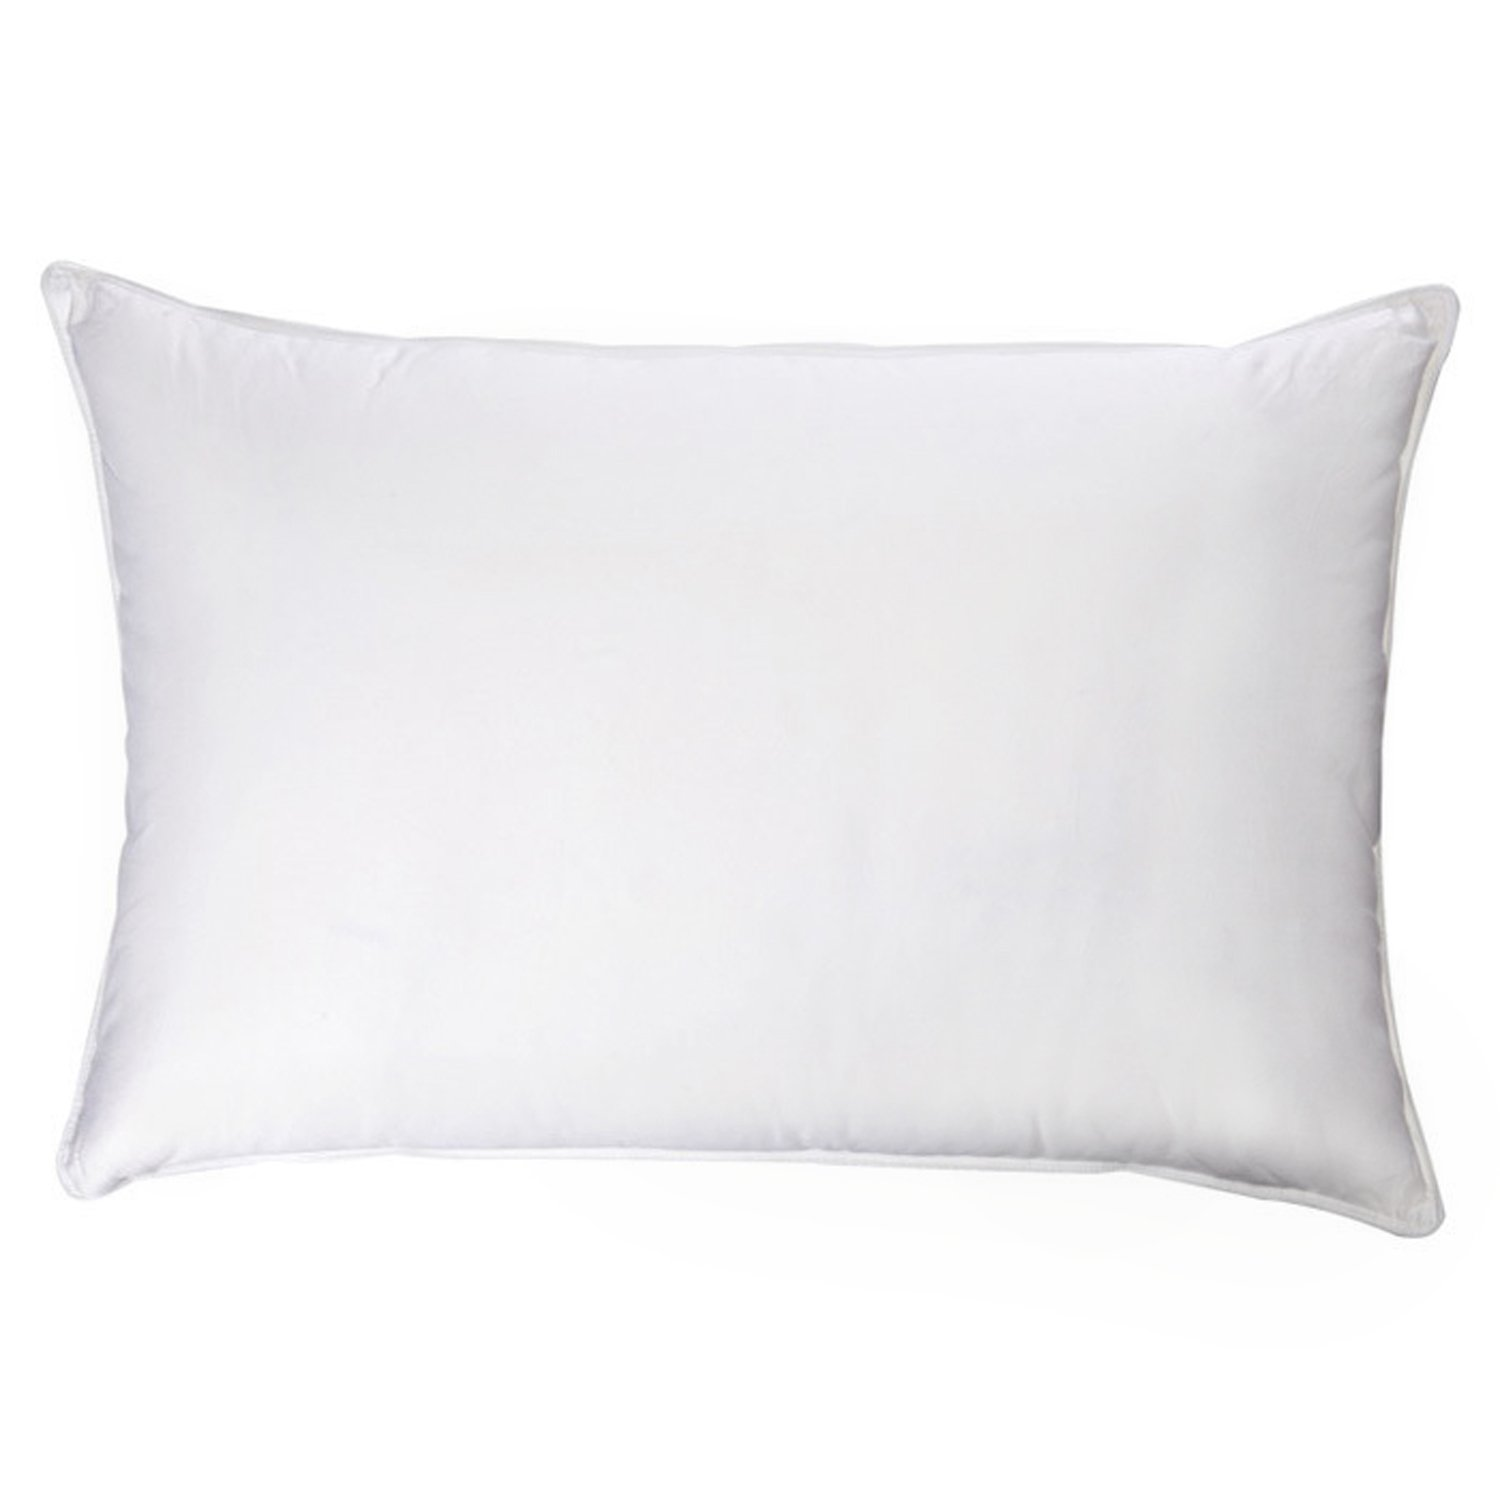 edition bamboo hypoallergenic of pillow pillows essence and down rayon designed com stay premium derived cool alternative dp fiber filled platinum amazon